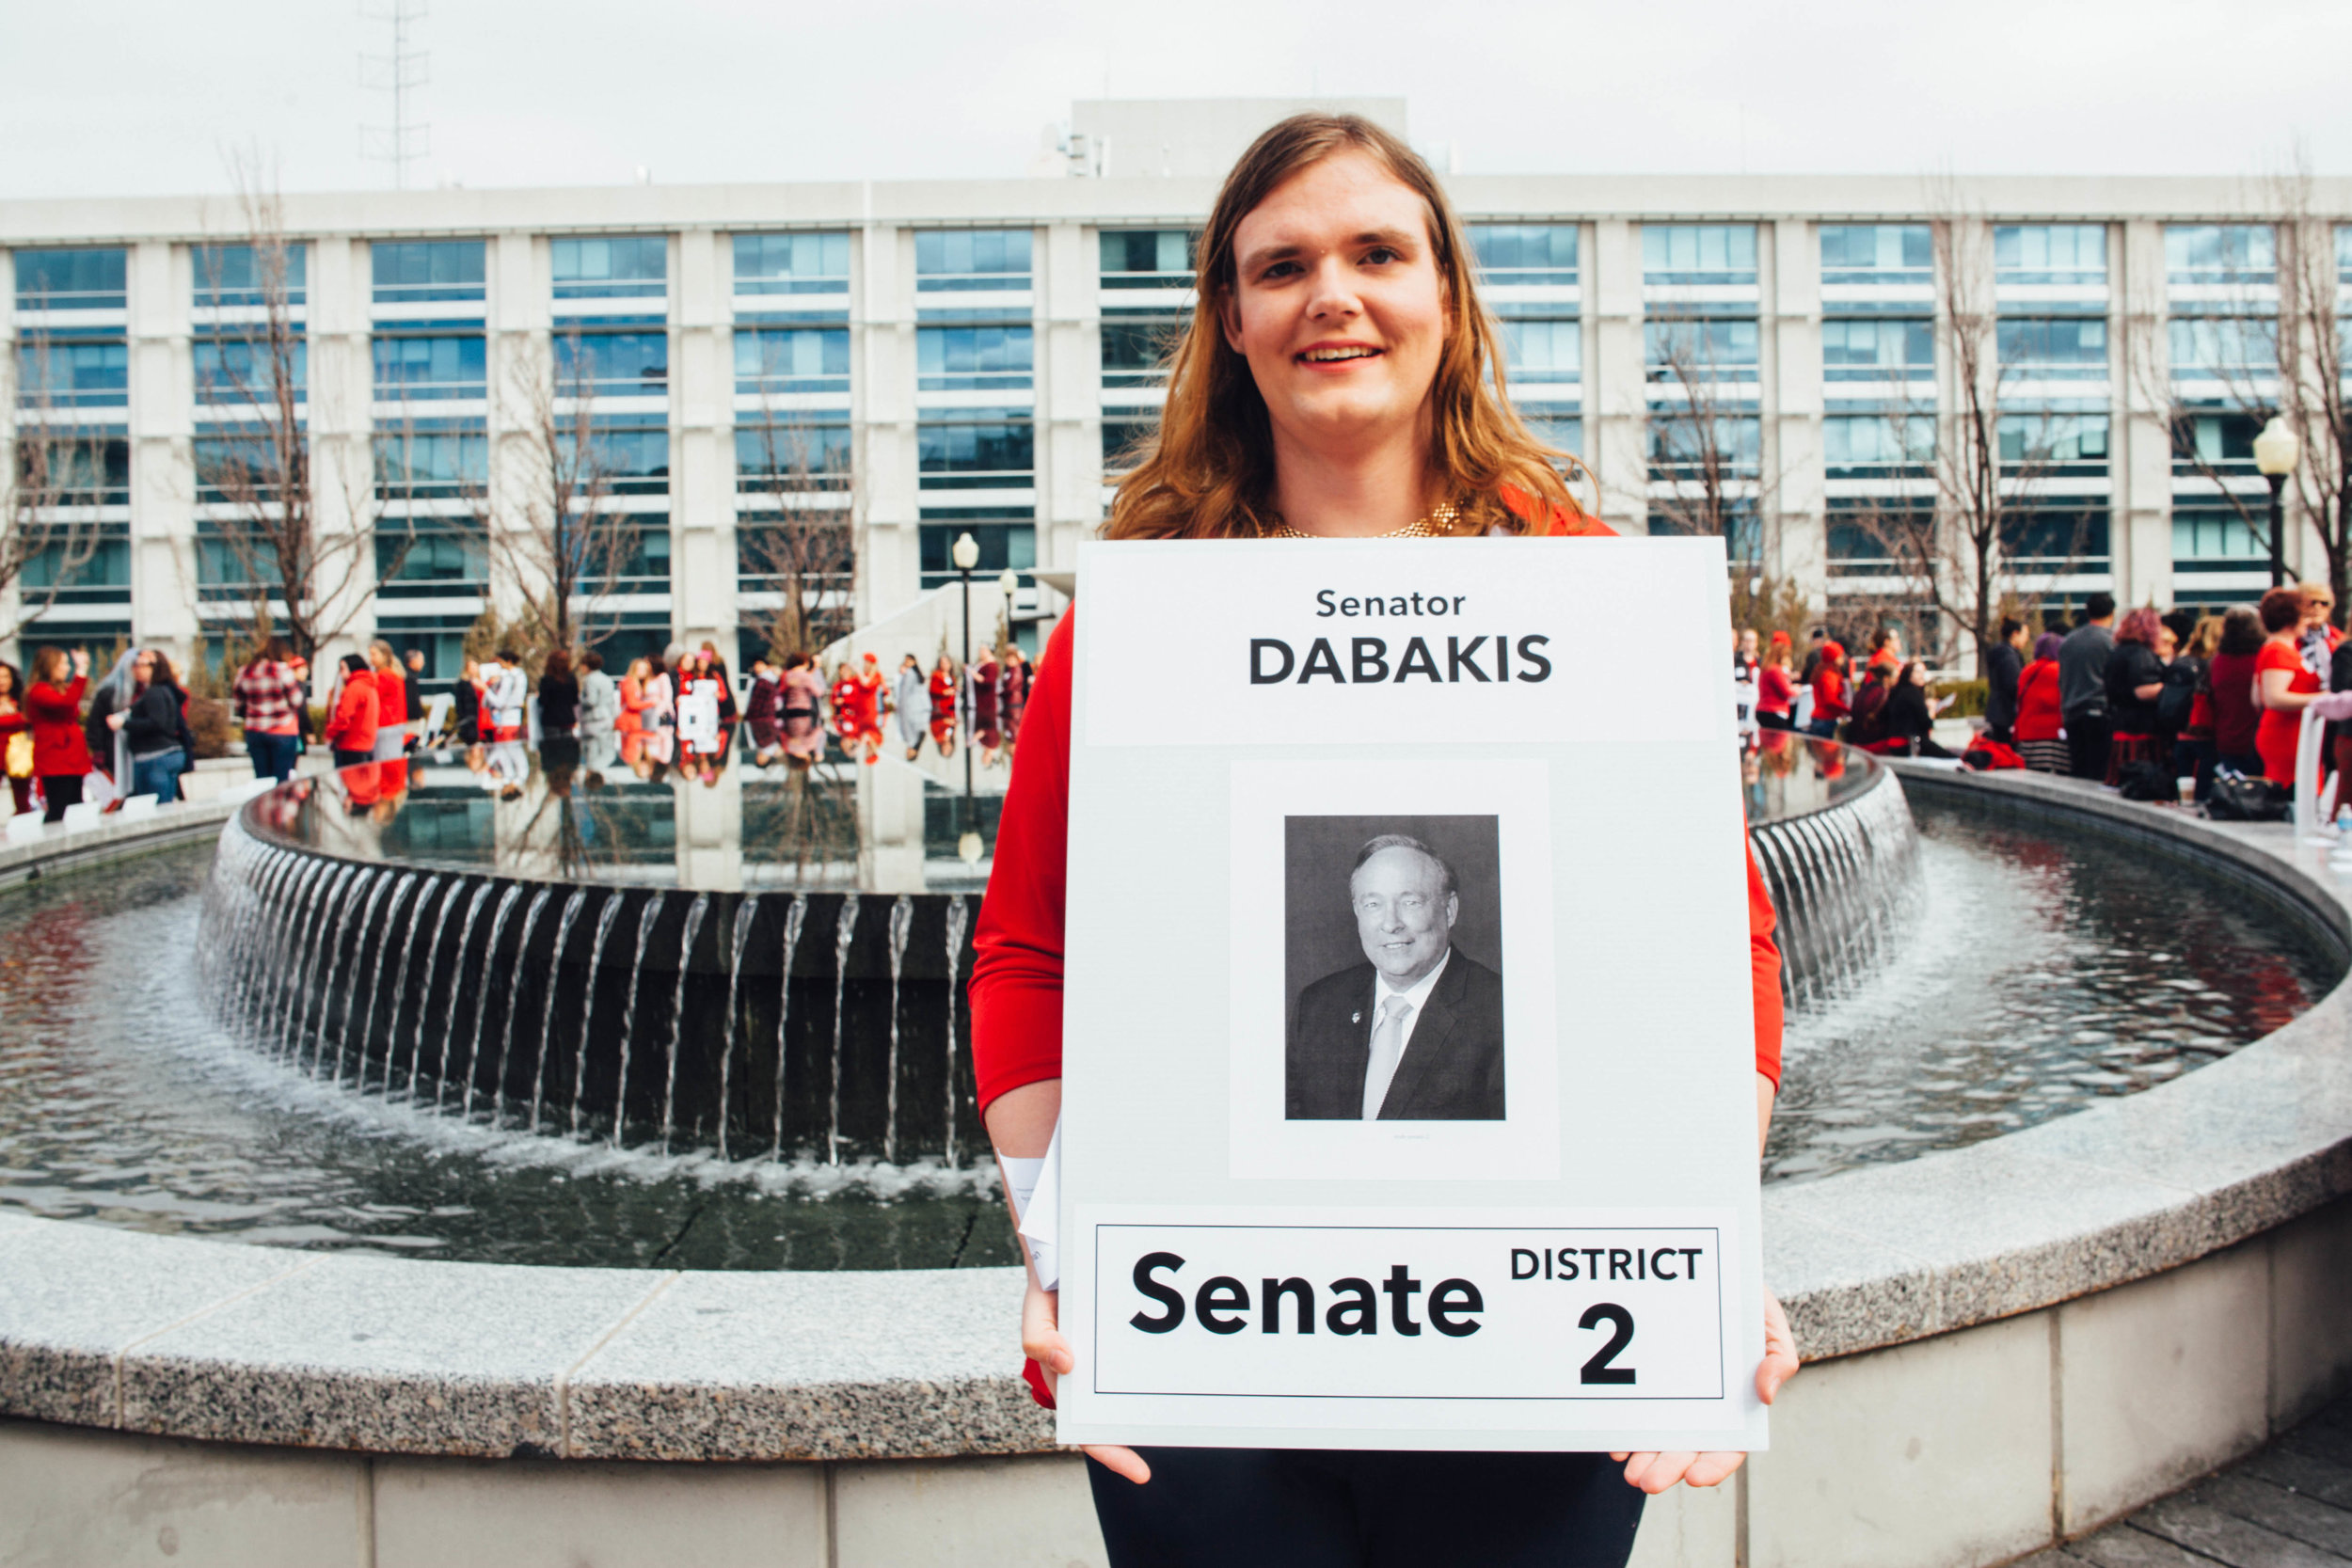 Misty K. Snow, a Democratic candidate for the Utah senate in 2016 and the first transgender woman to appear on a ballot in Utah for senate, attends the activities at the Capitol.